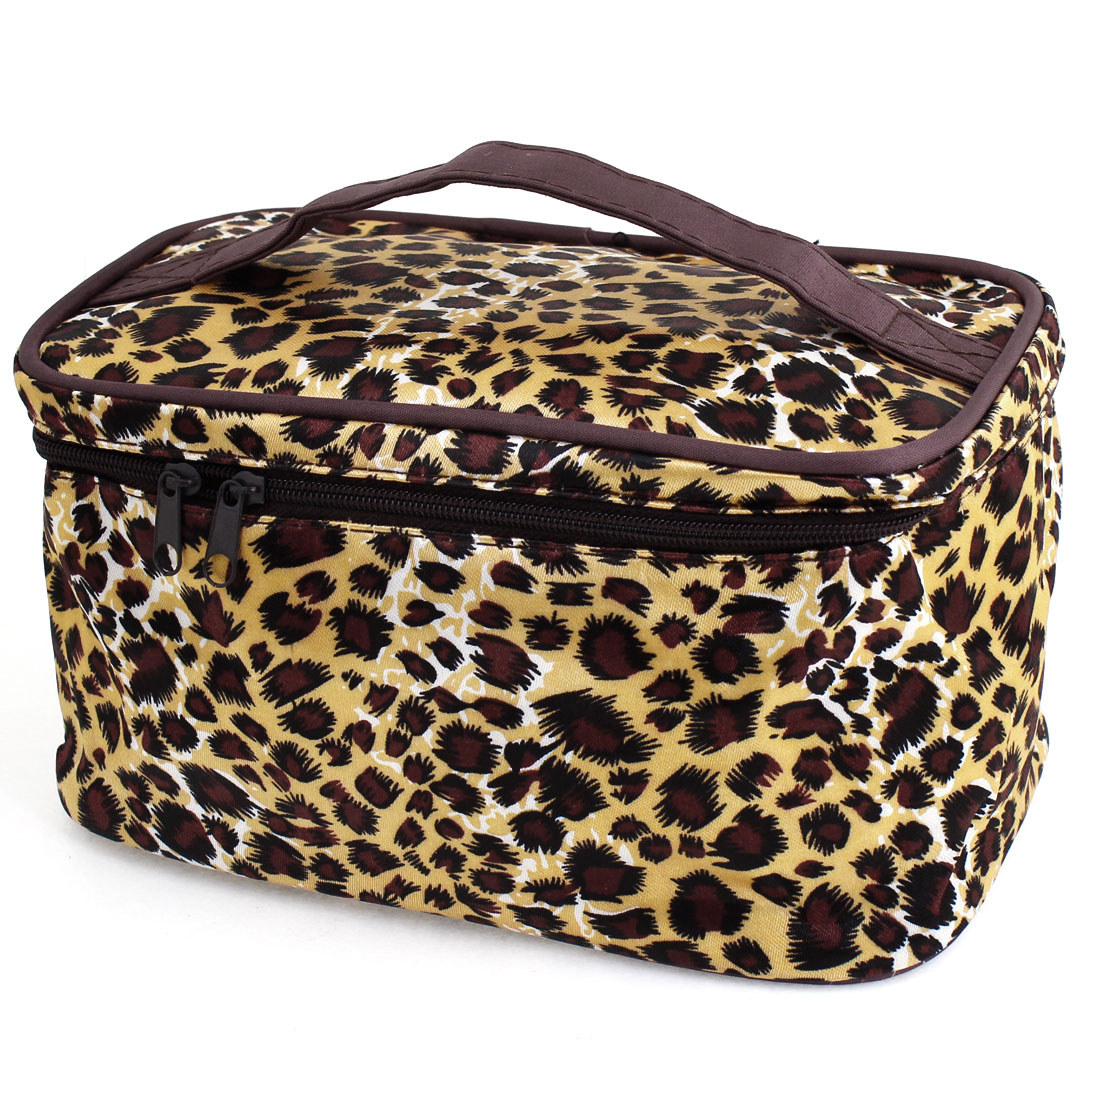 Brown Beige Leopard Printed Cosmetic Bag Make Up Pouch Case for Women